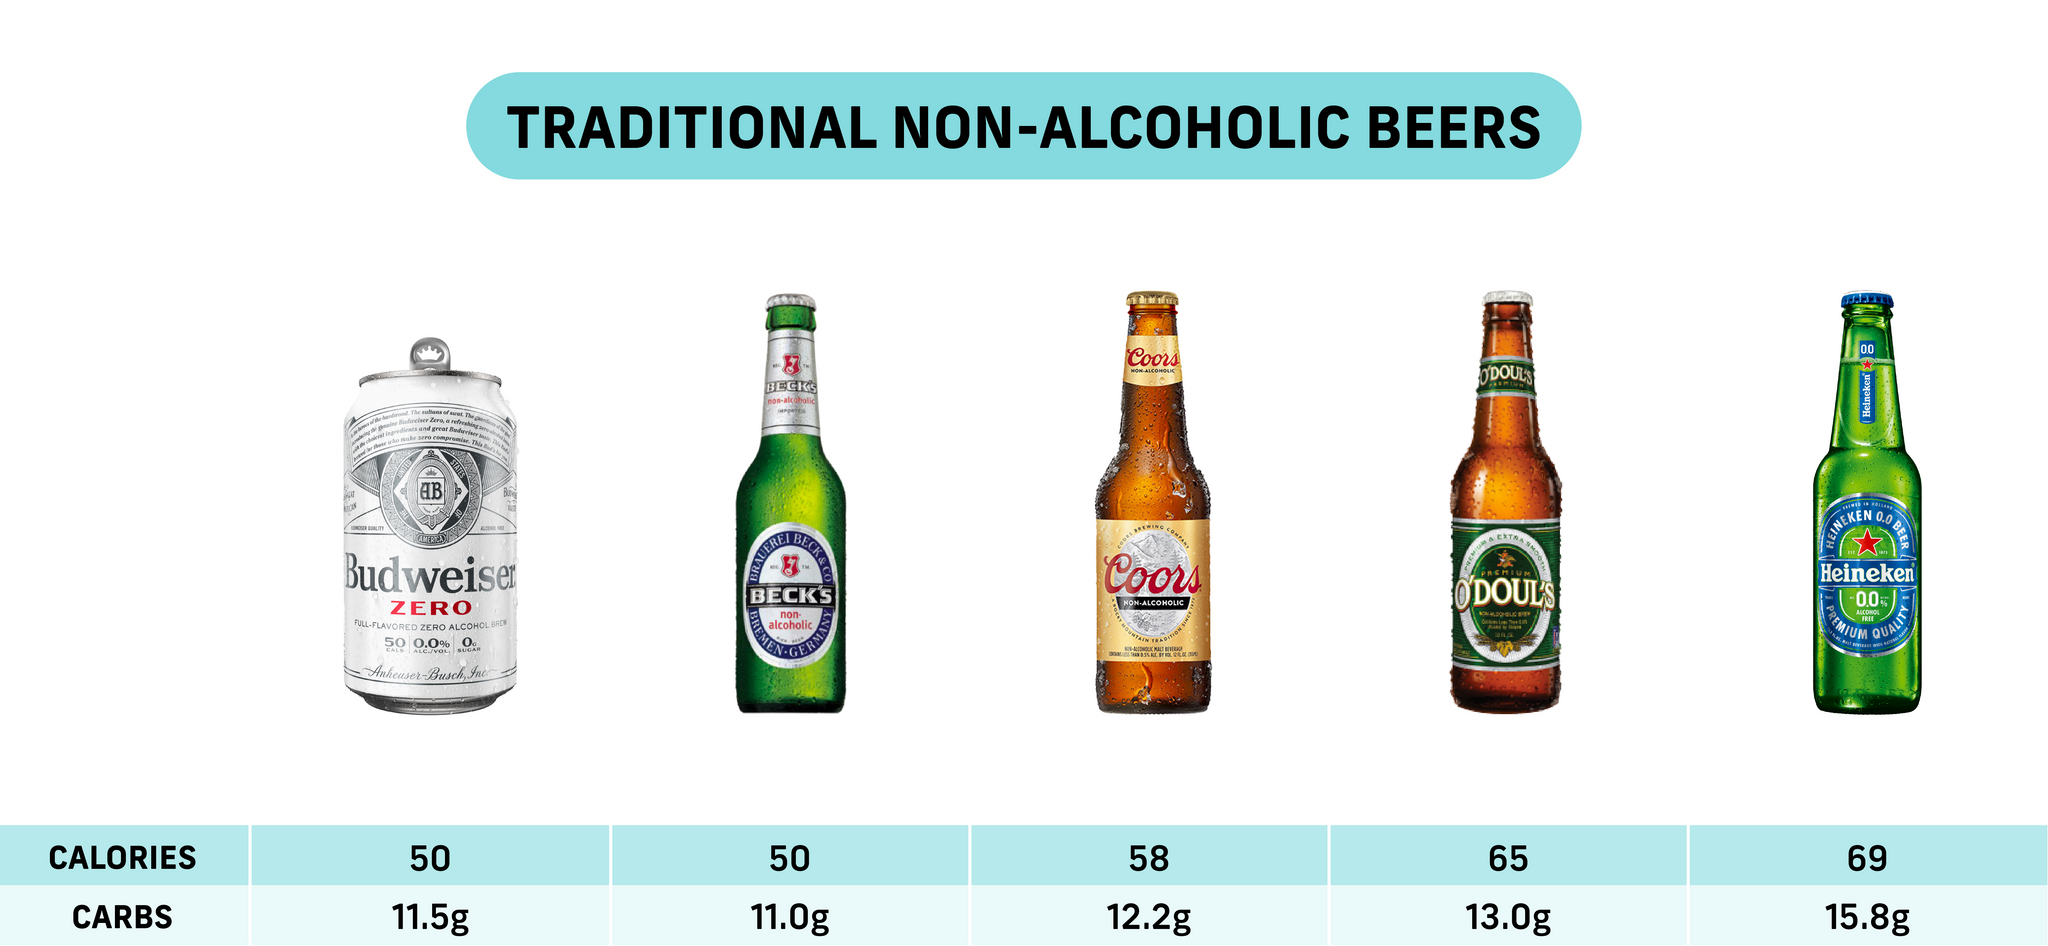 Calories and Carbs for traditional non-alcoholic beers.